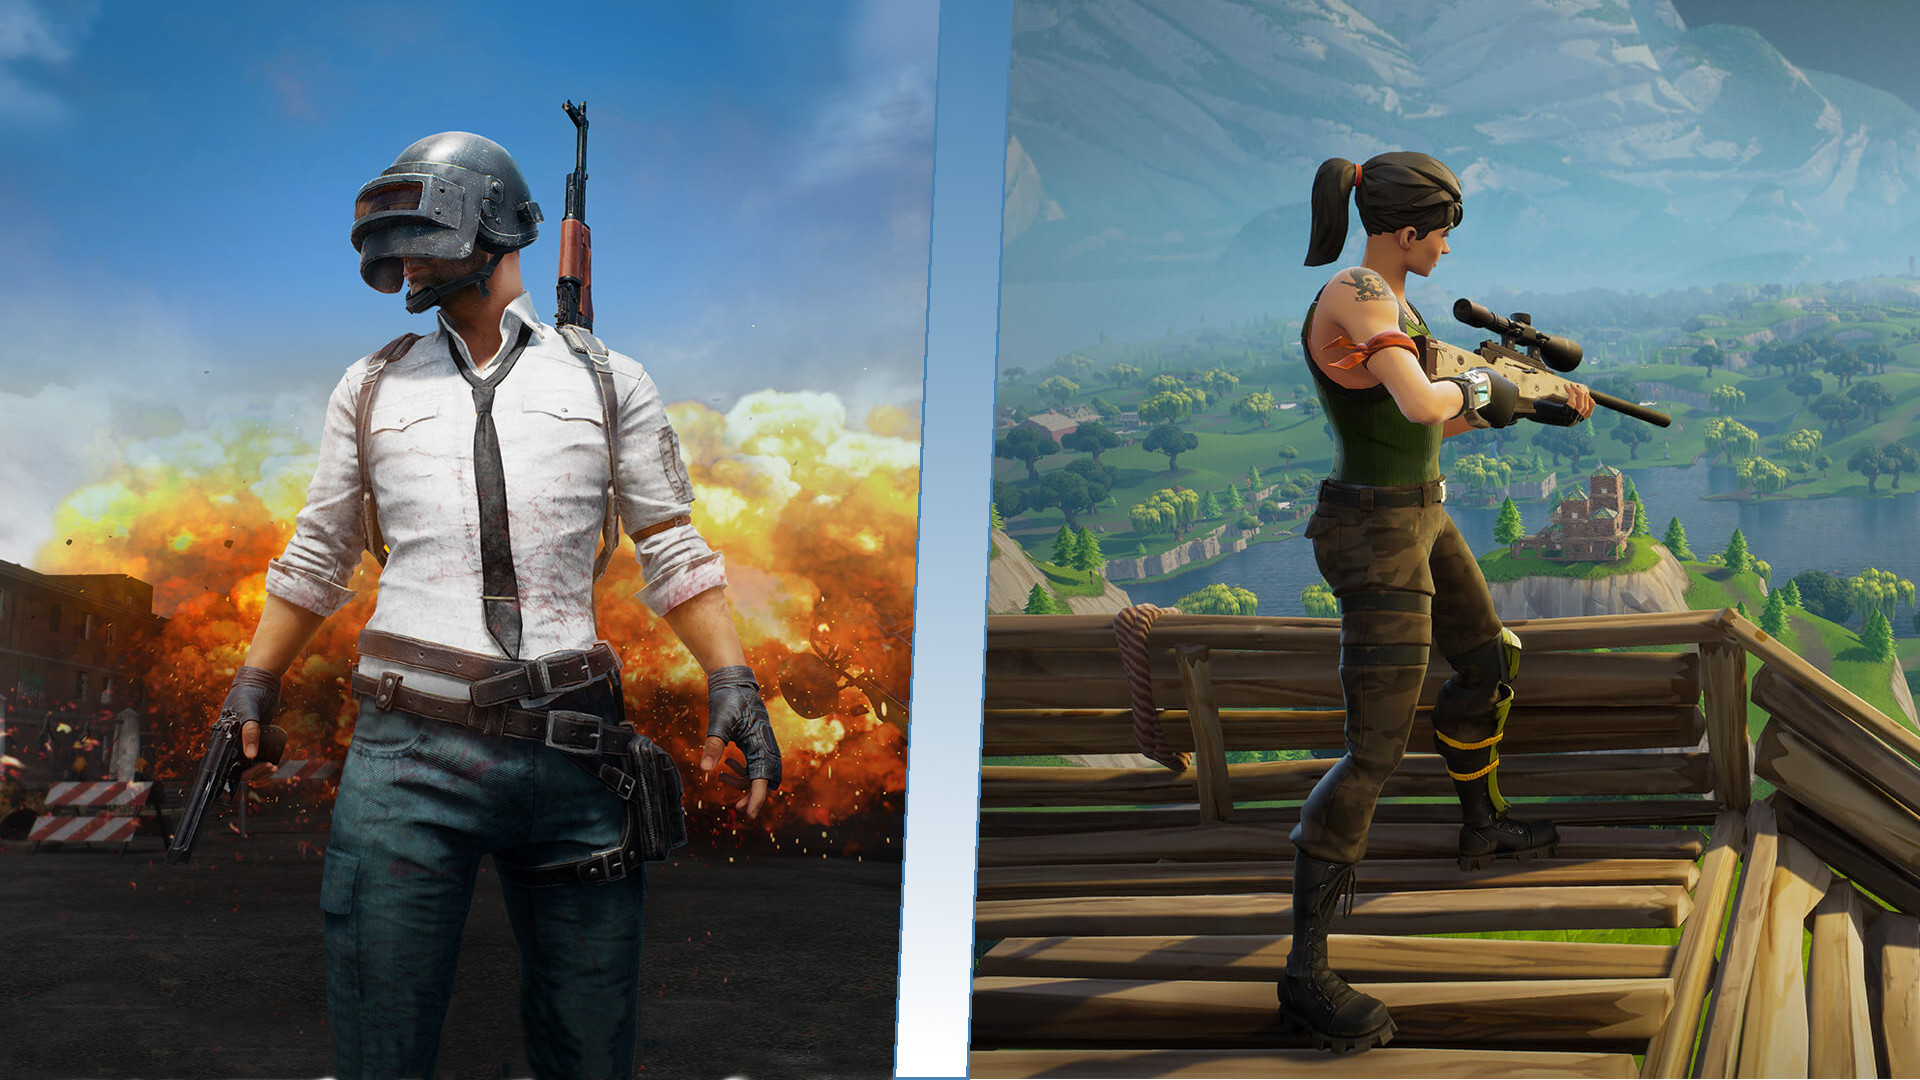 Photo of PUBG Corp suing Epic Games because of Fortnite's in-game similarities